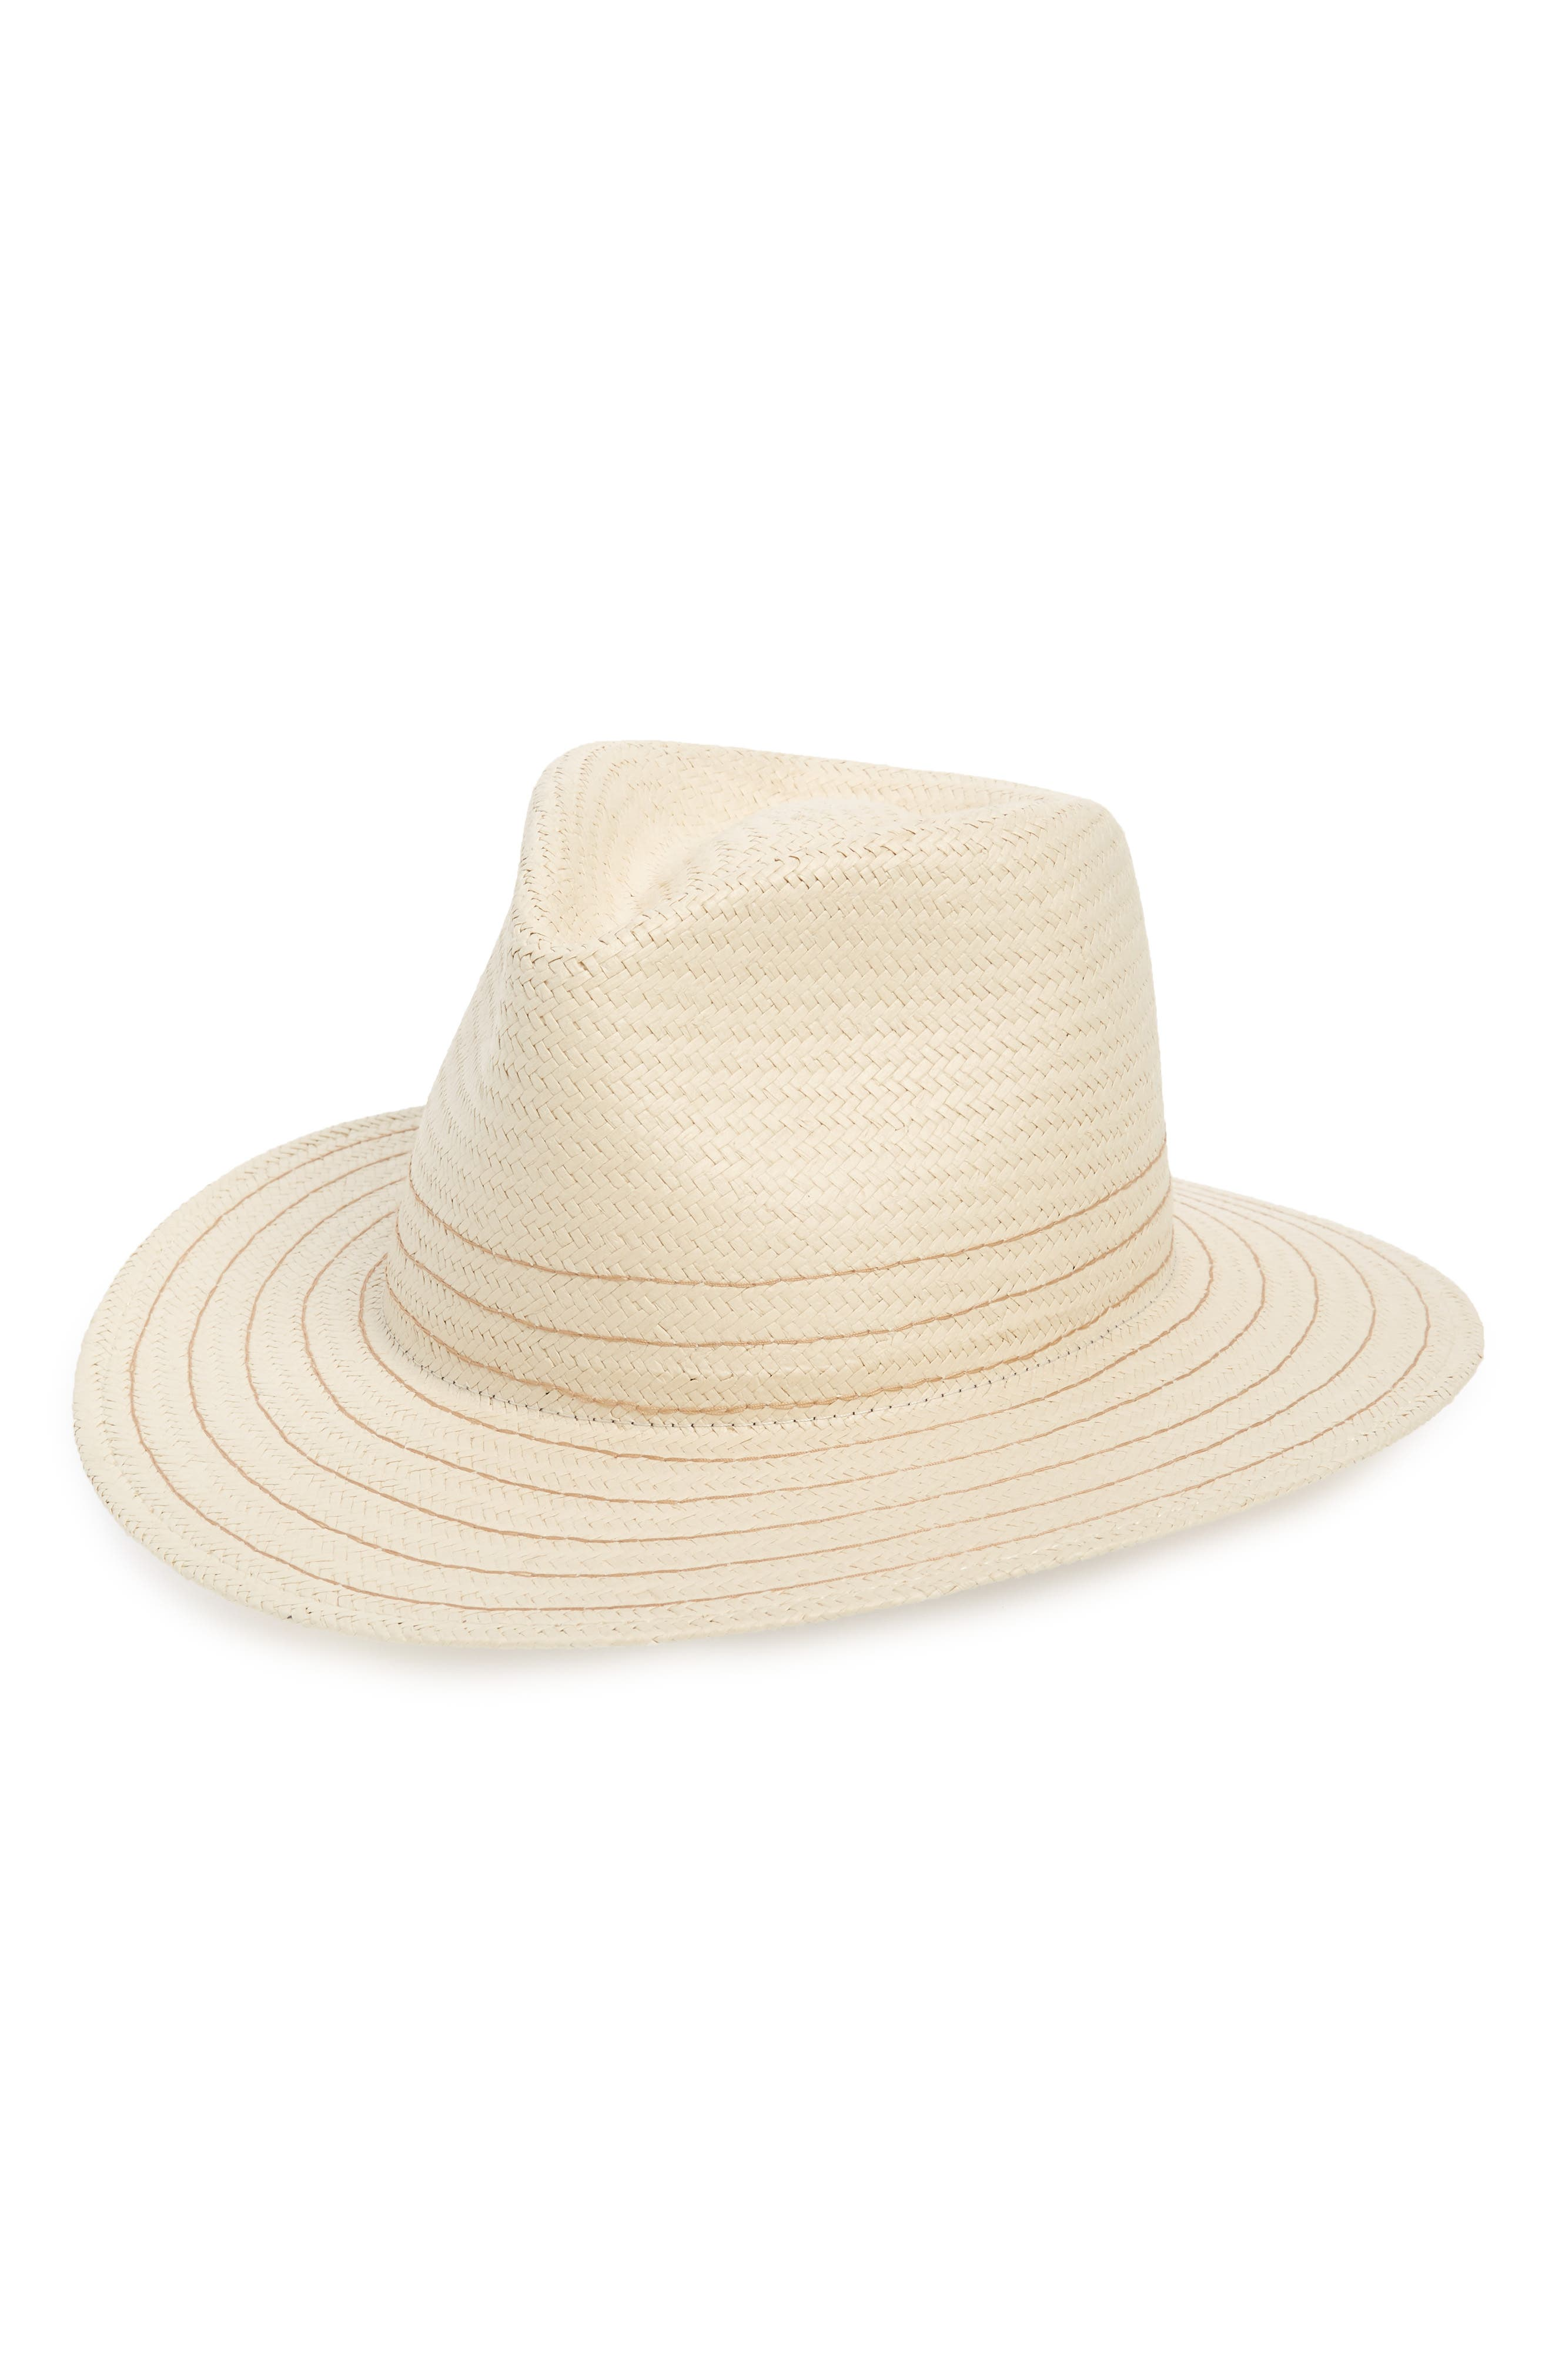 RAG & BONE, Packable Straw Fedora, Main thumbnail 1, color, NATURAL